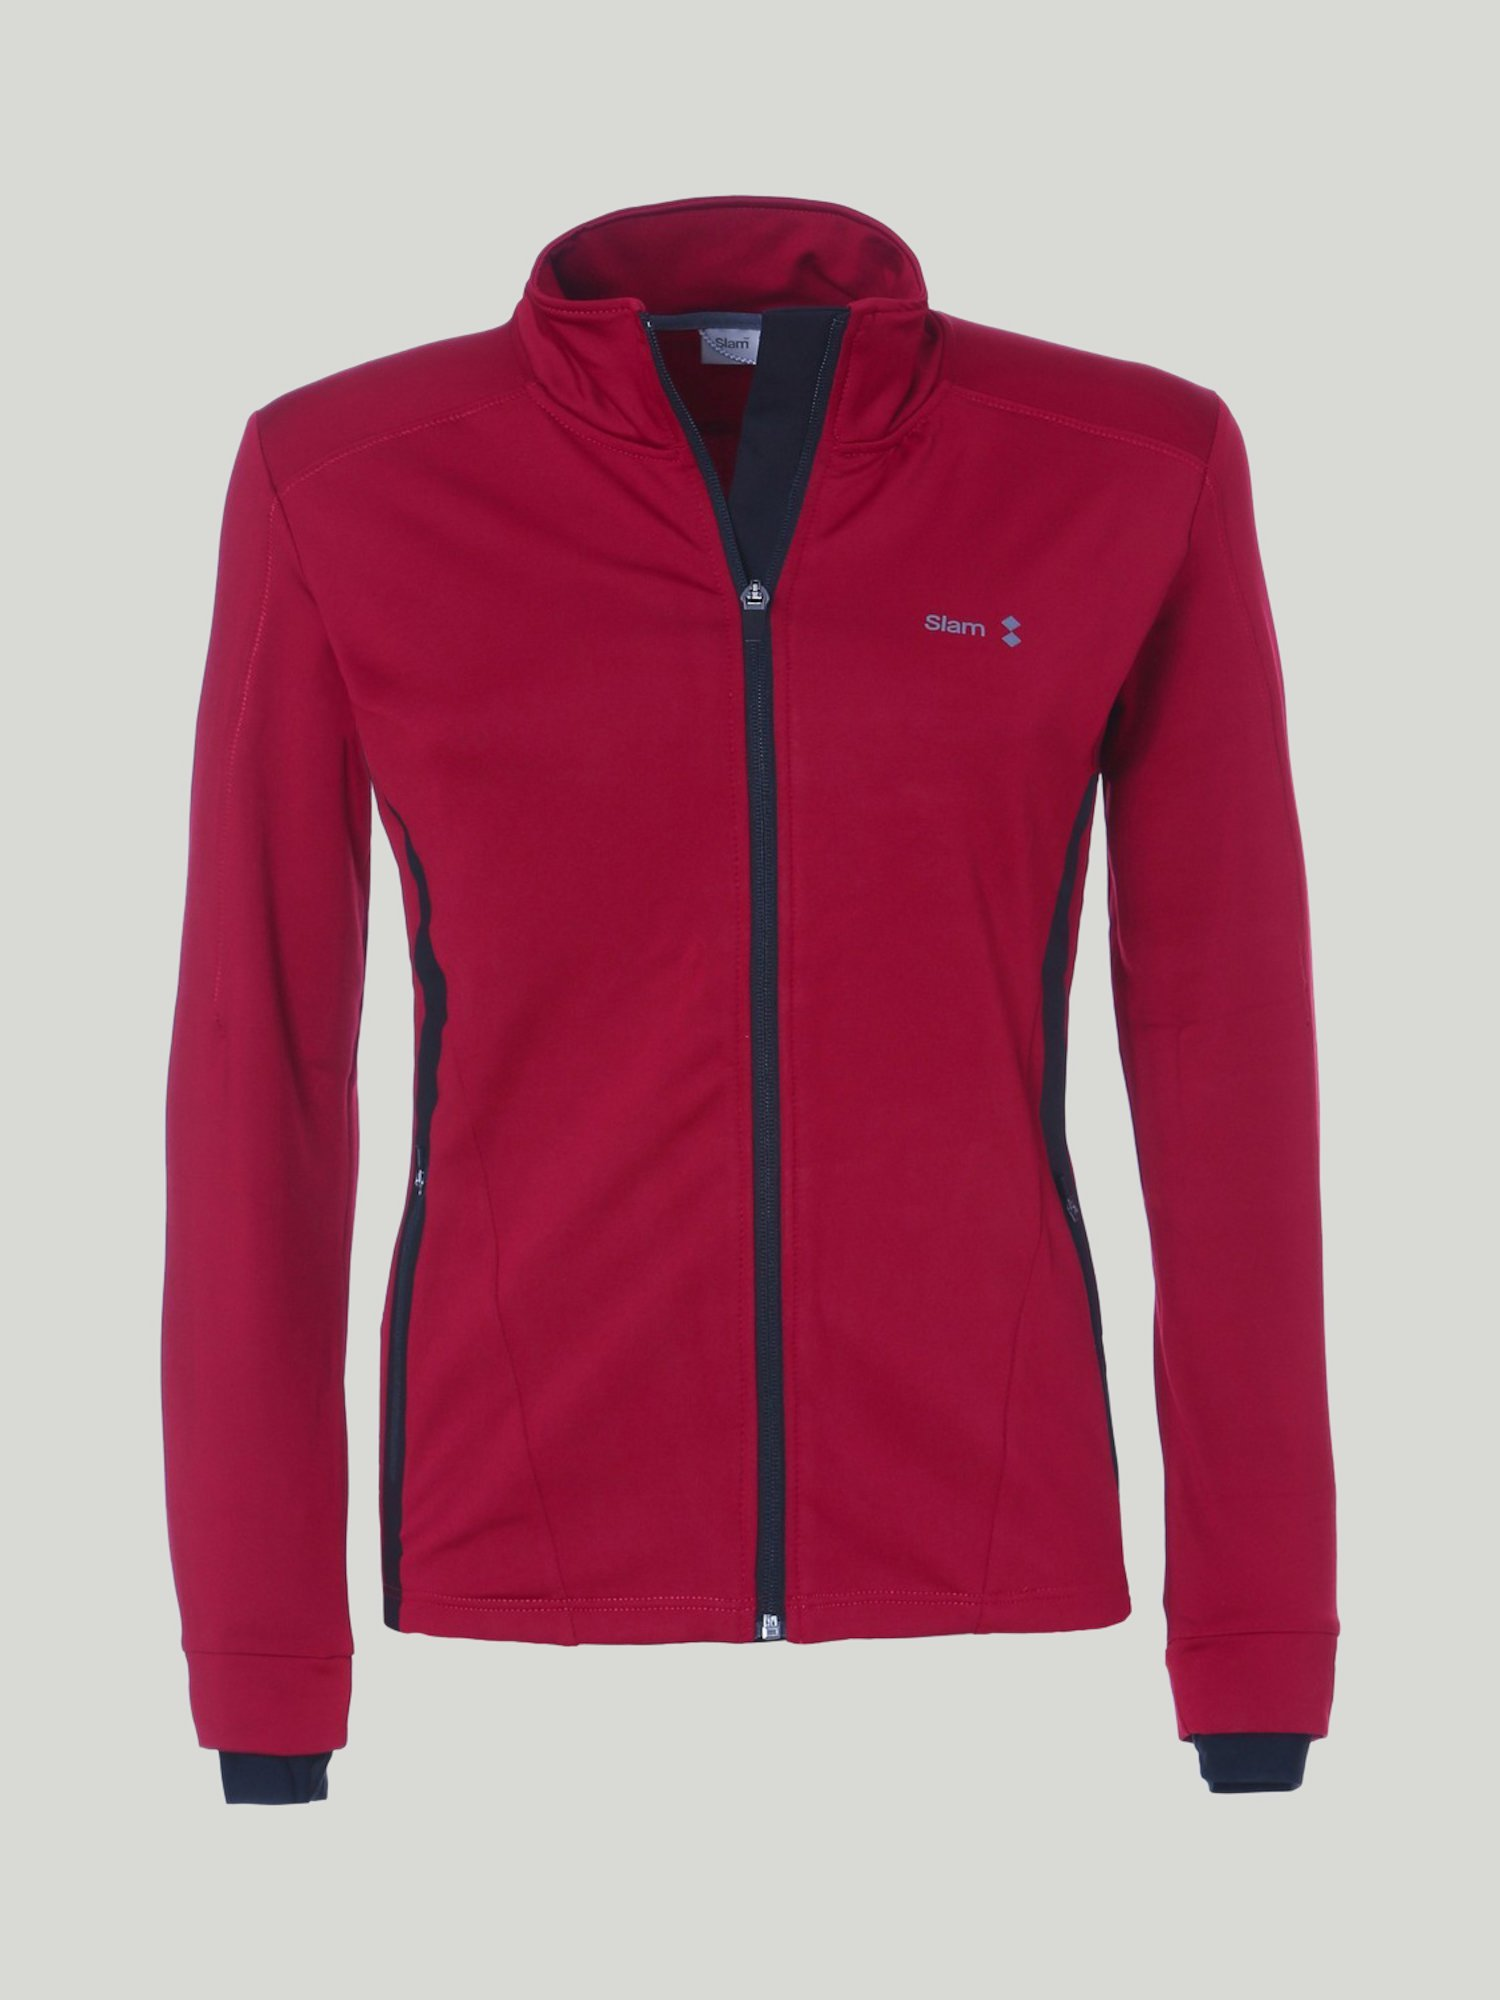 FLEECE MOPELIA - Breton Red